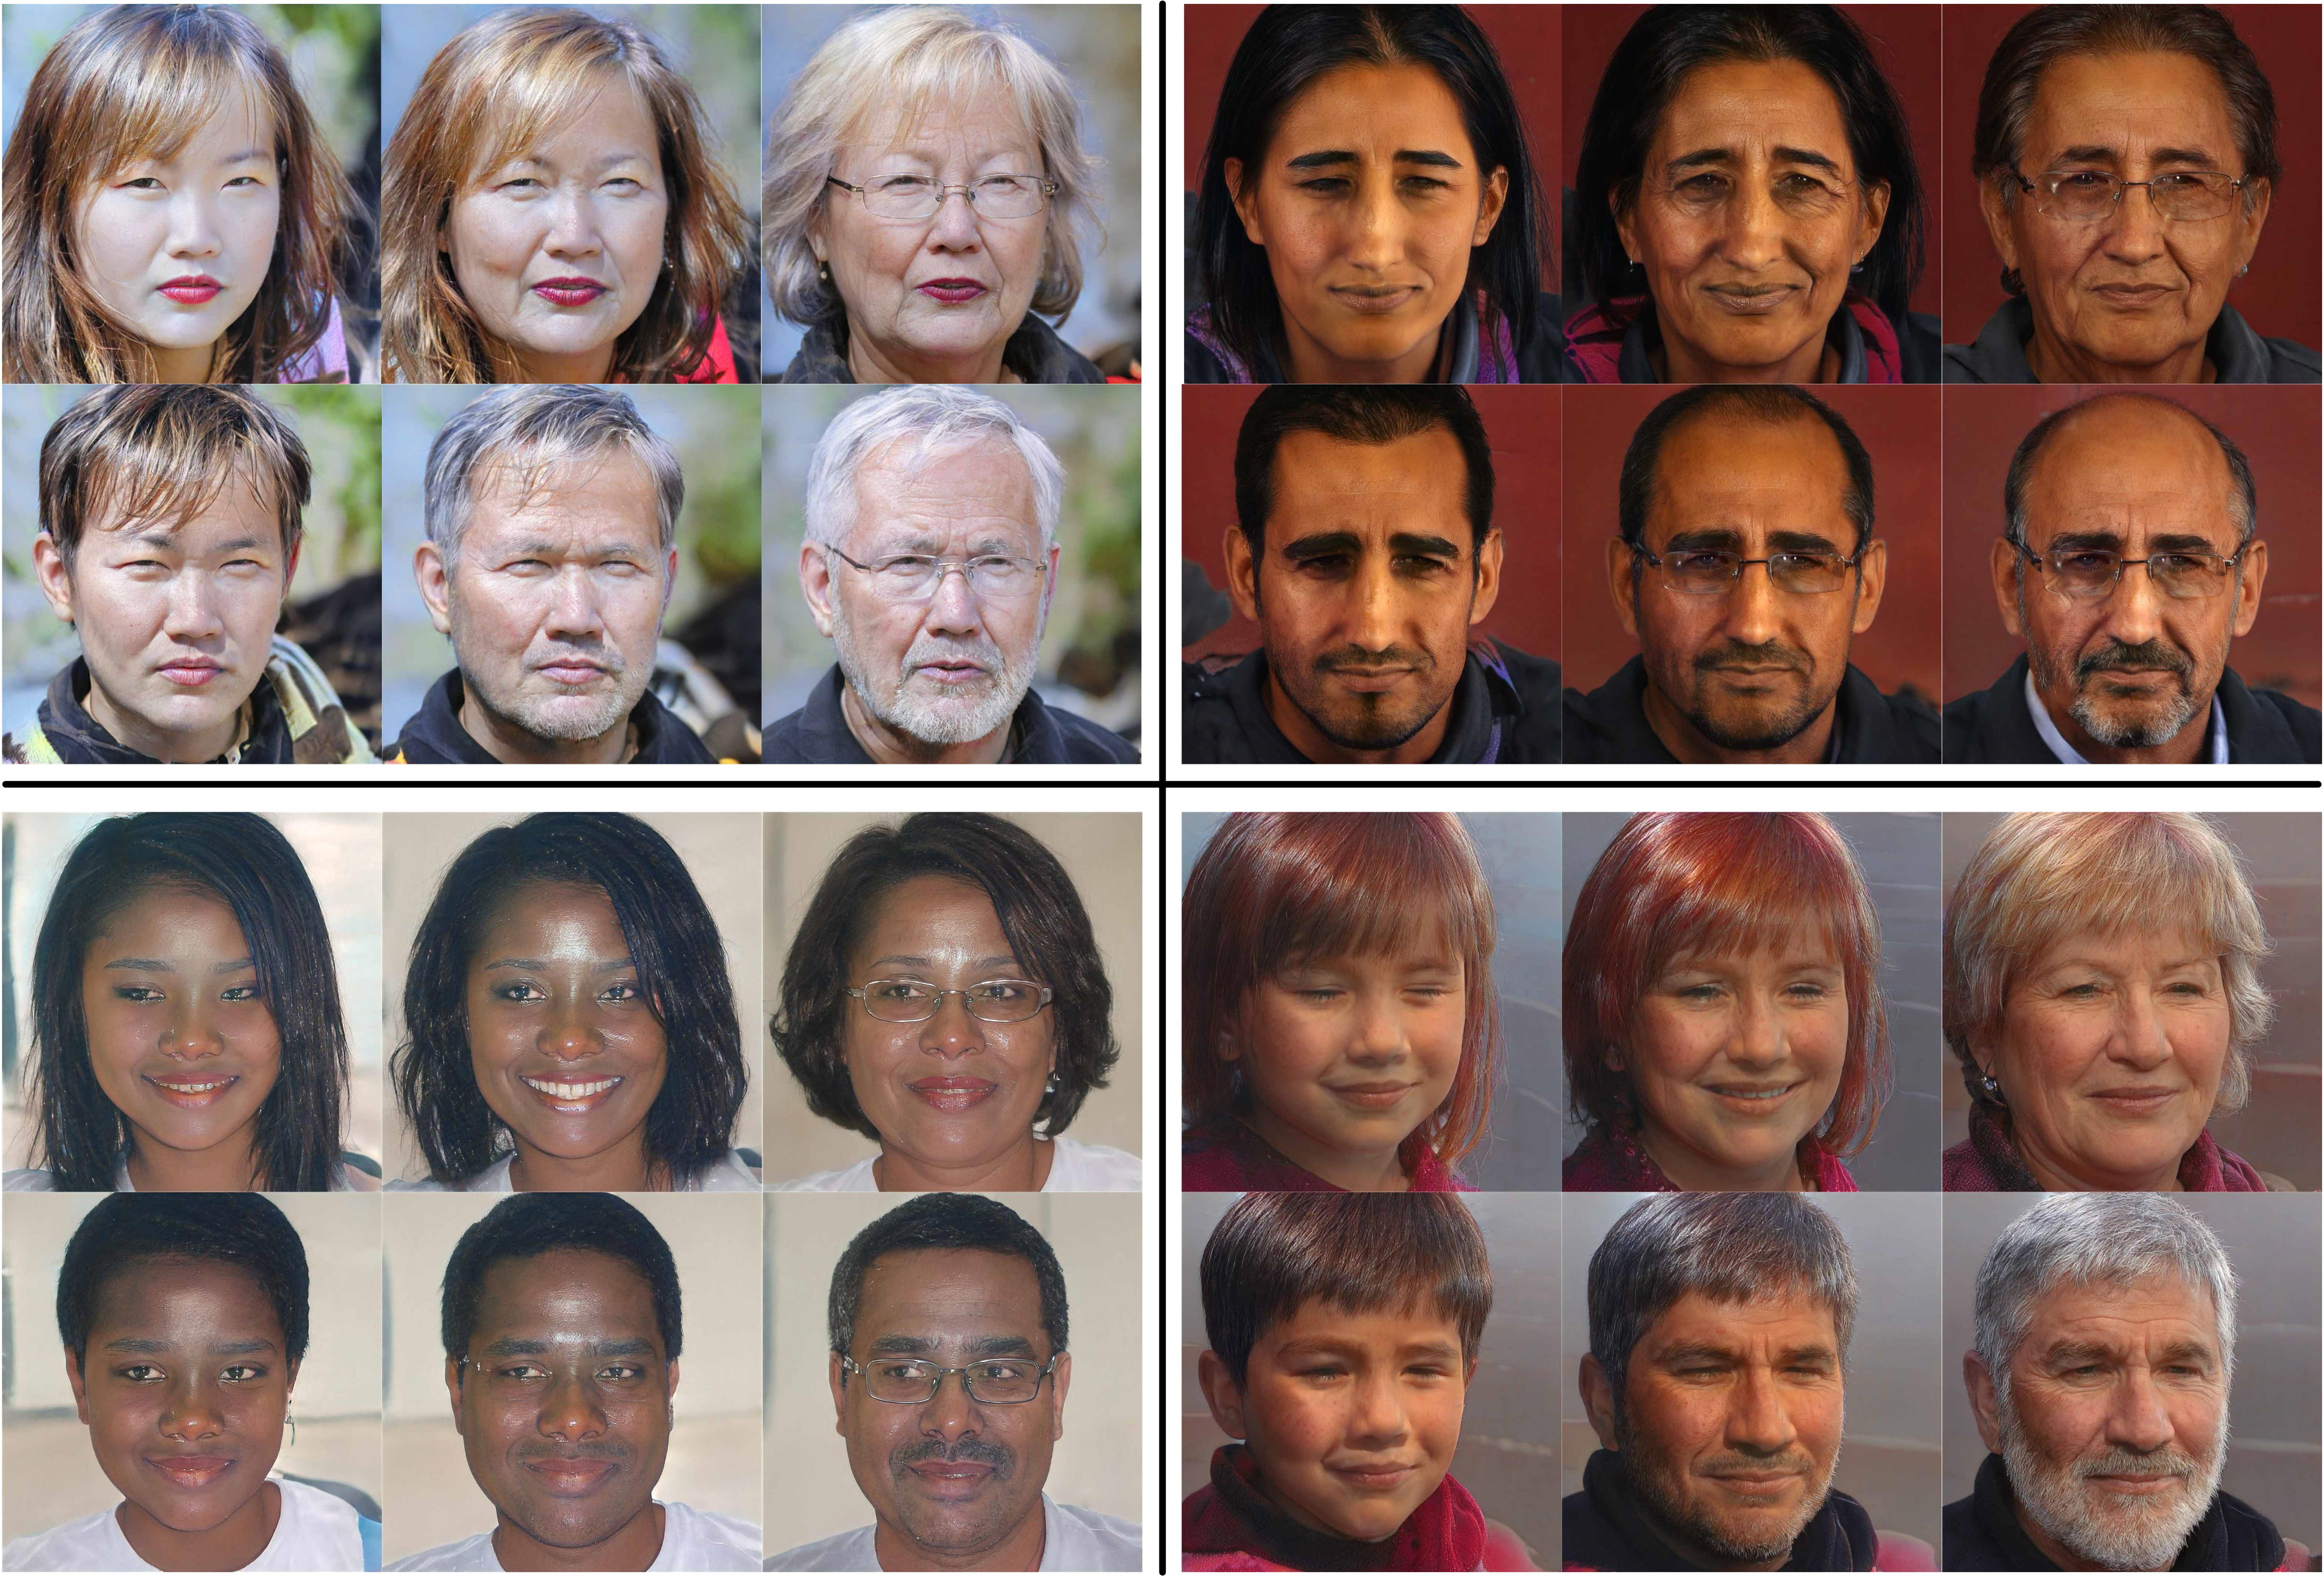 Some experimental results of the proposed method. We fix the random seeds when sampling factors under different semantic label value ranges. From the figure, we can see the age and gender features change naturally with inducing artifacts. At the same time, the proposed method well preserved other irrelevant features like identification.